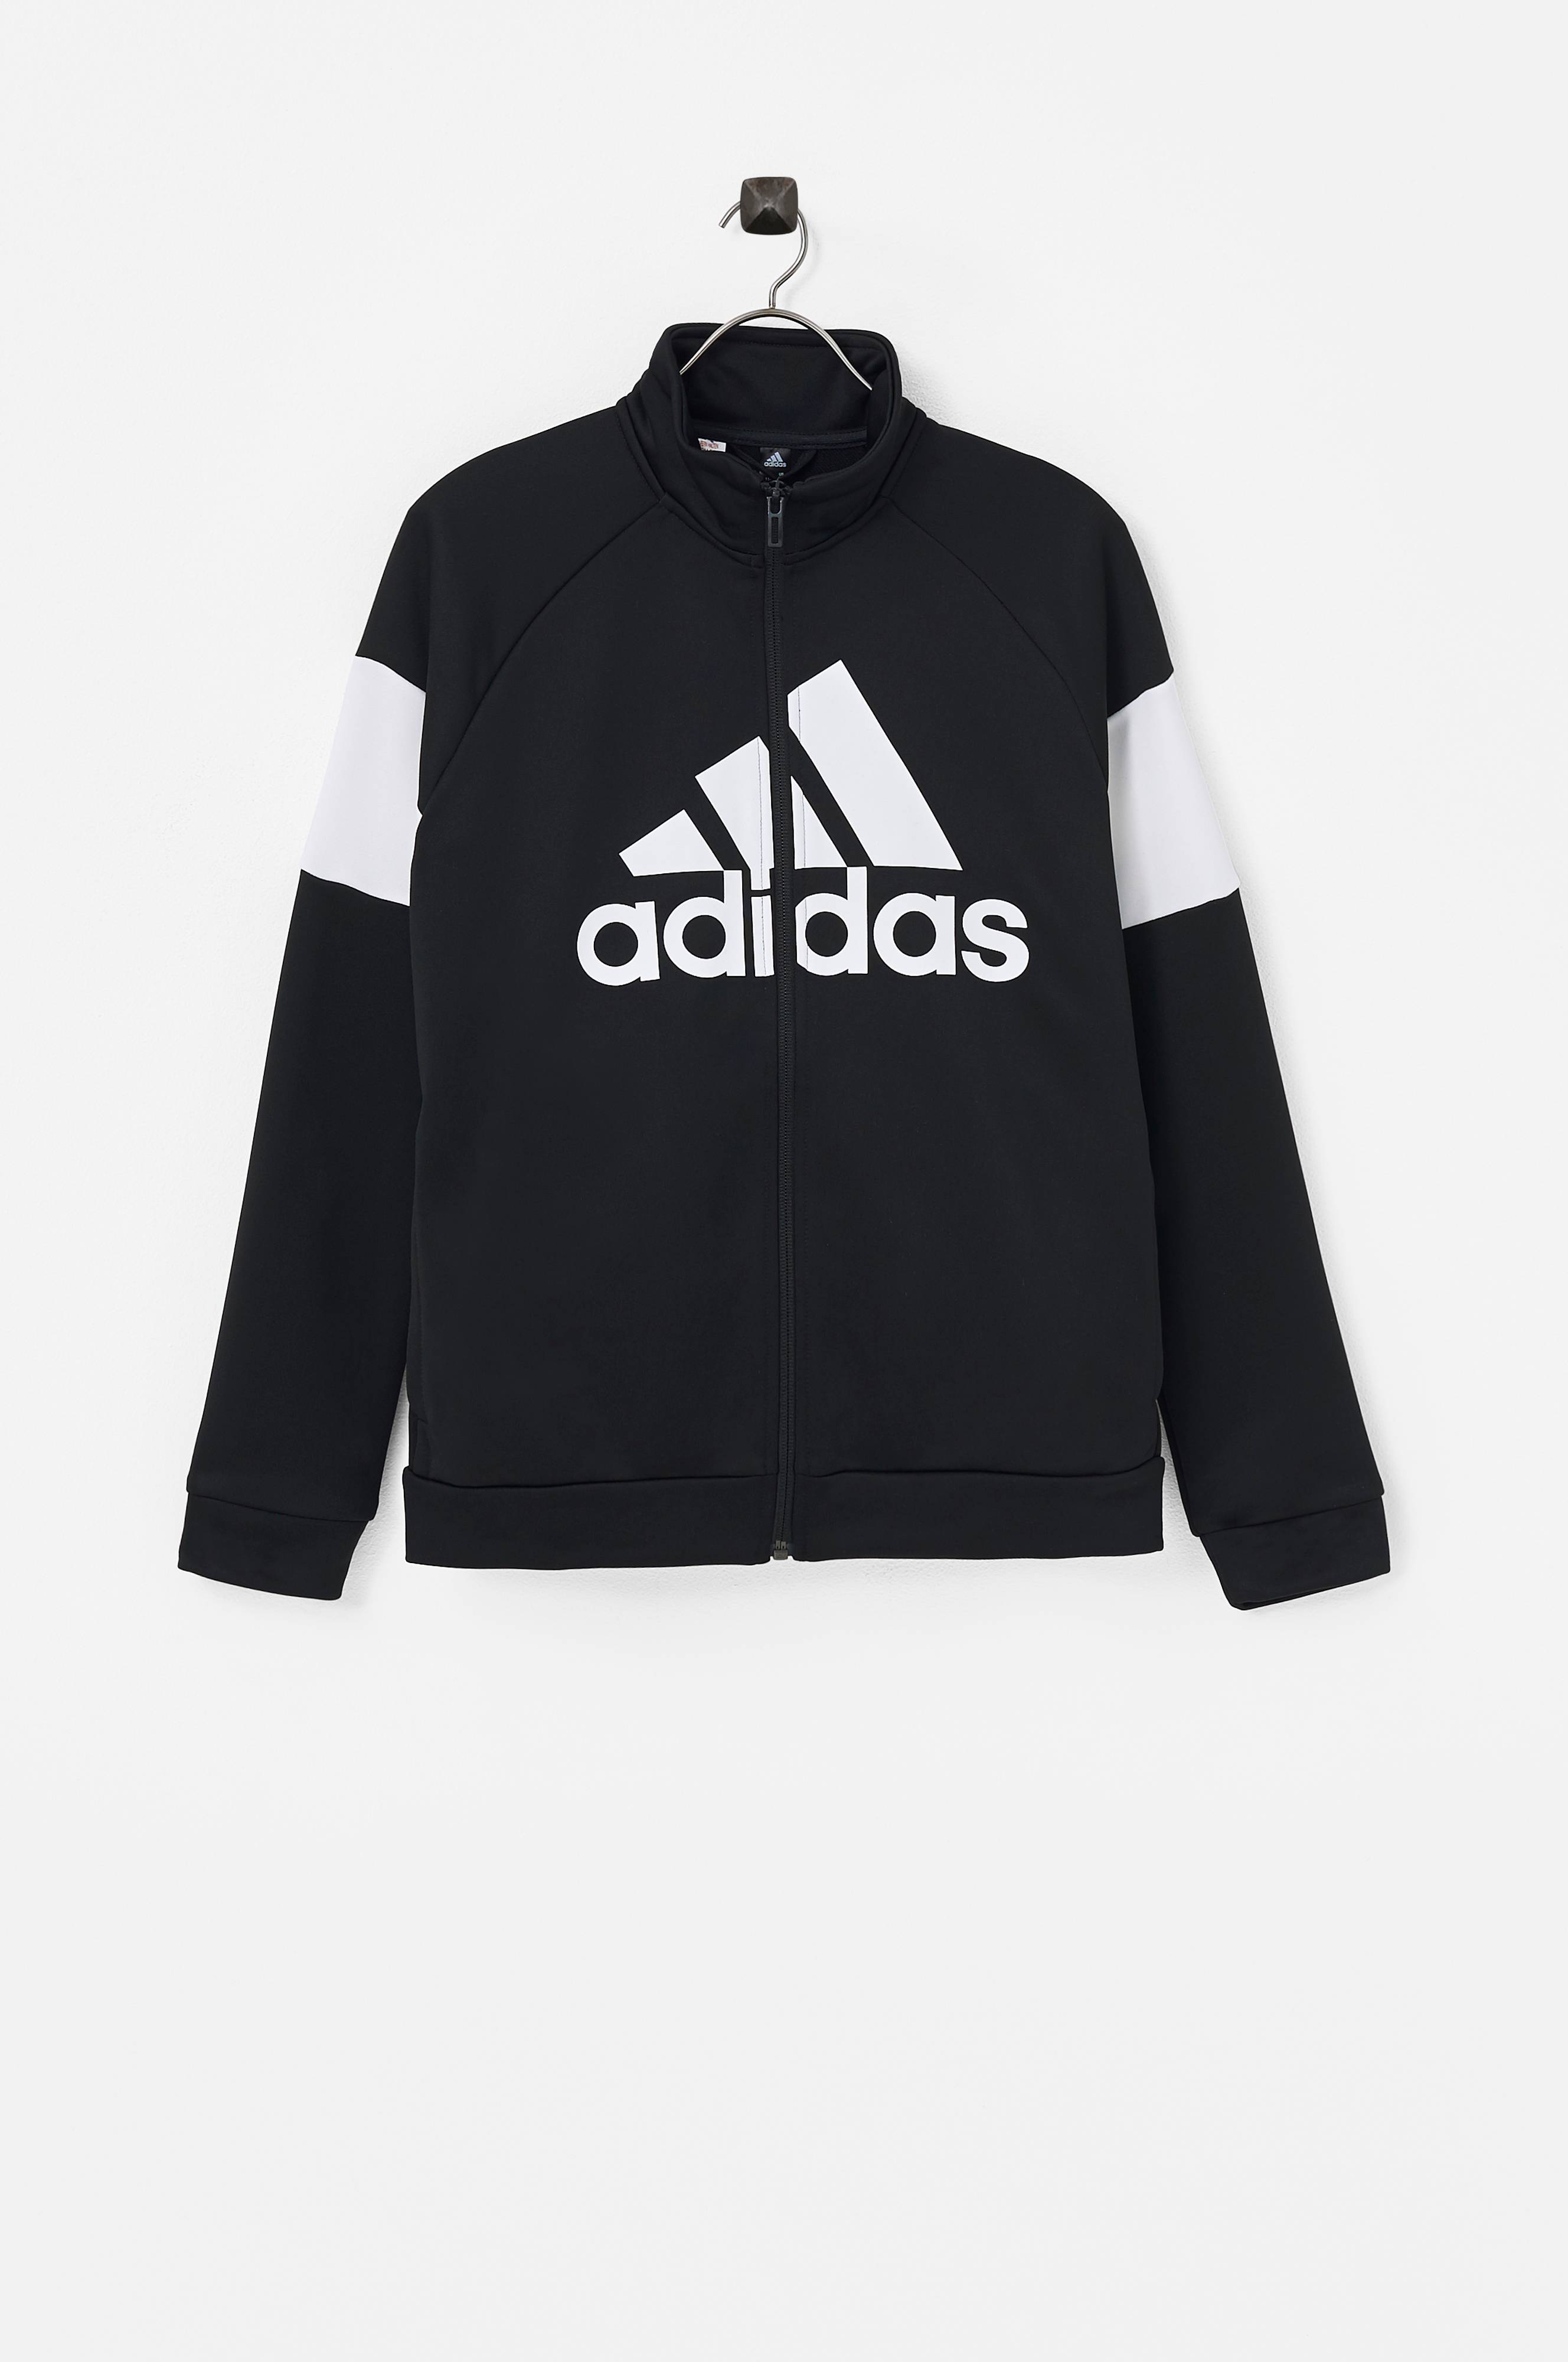 325f0cb0 adidas Sport Performance Treningsdress Badge of Sport Track Suit - Svart -  Barn - Ellos.no